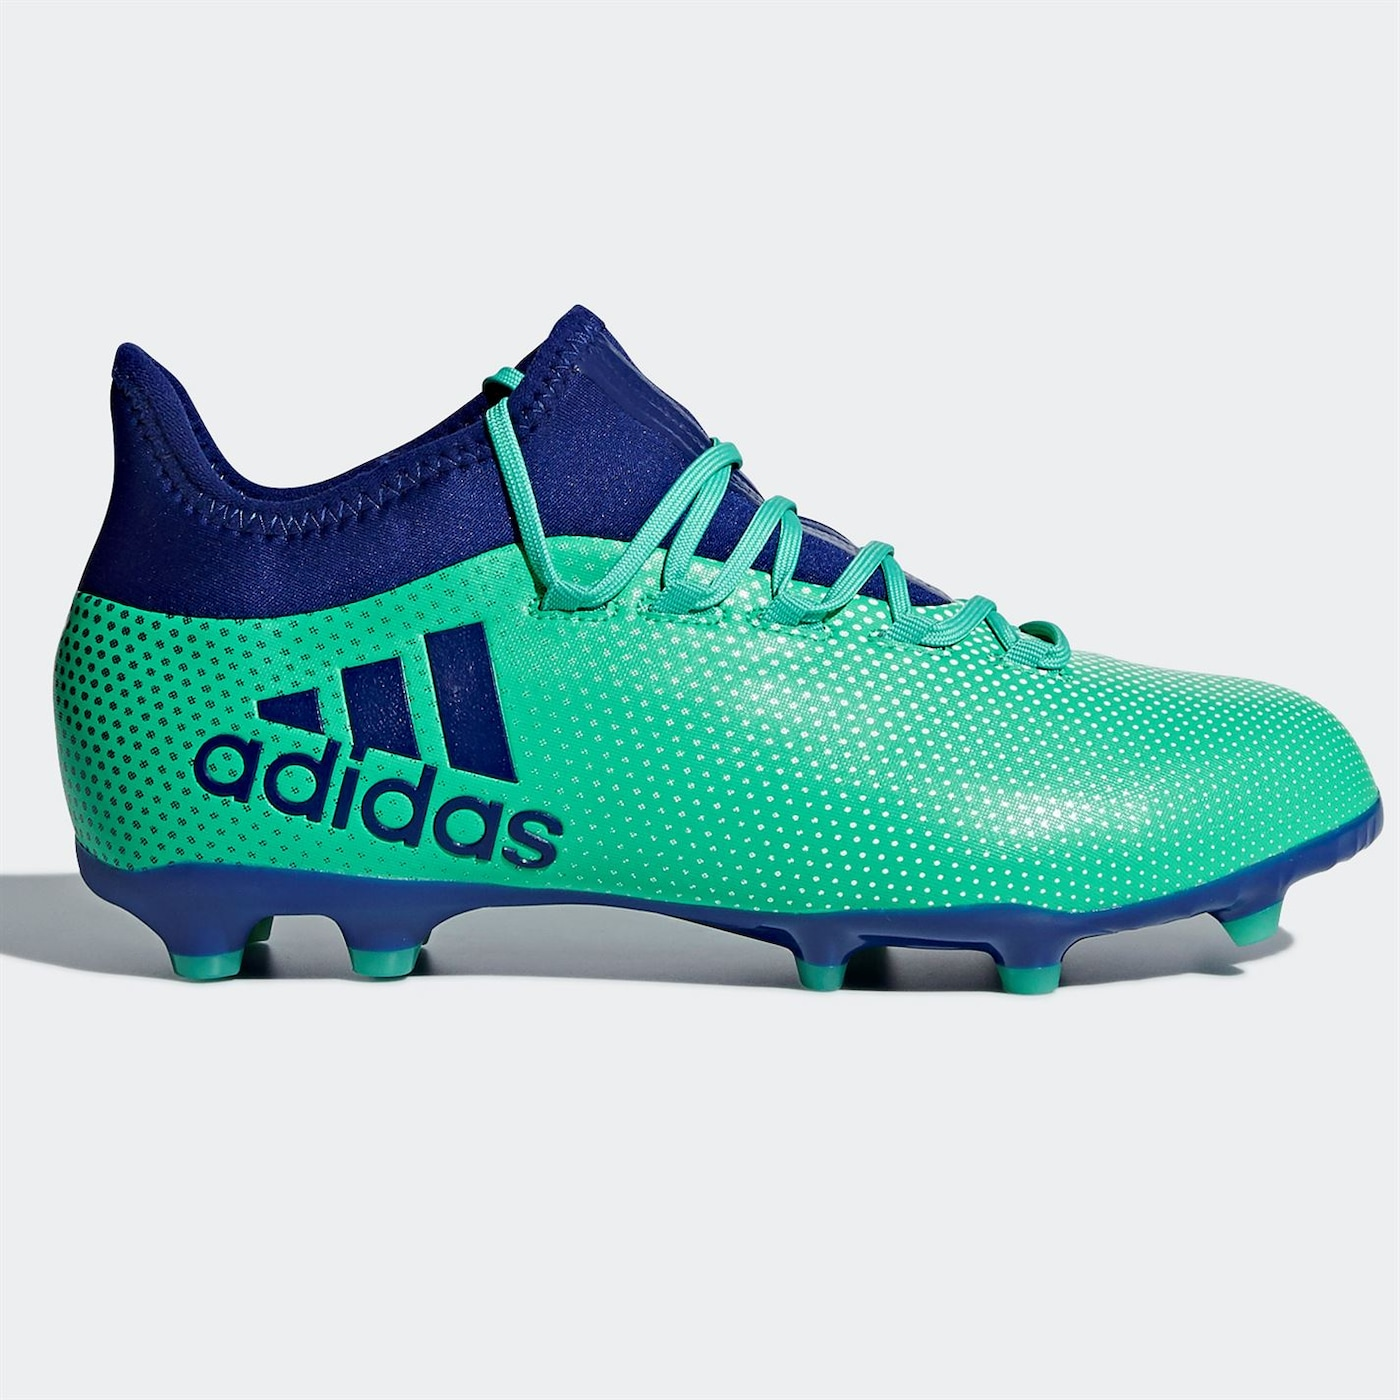 Adidas X 17.1 Junior FG Football Boots